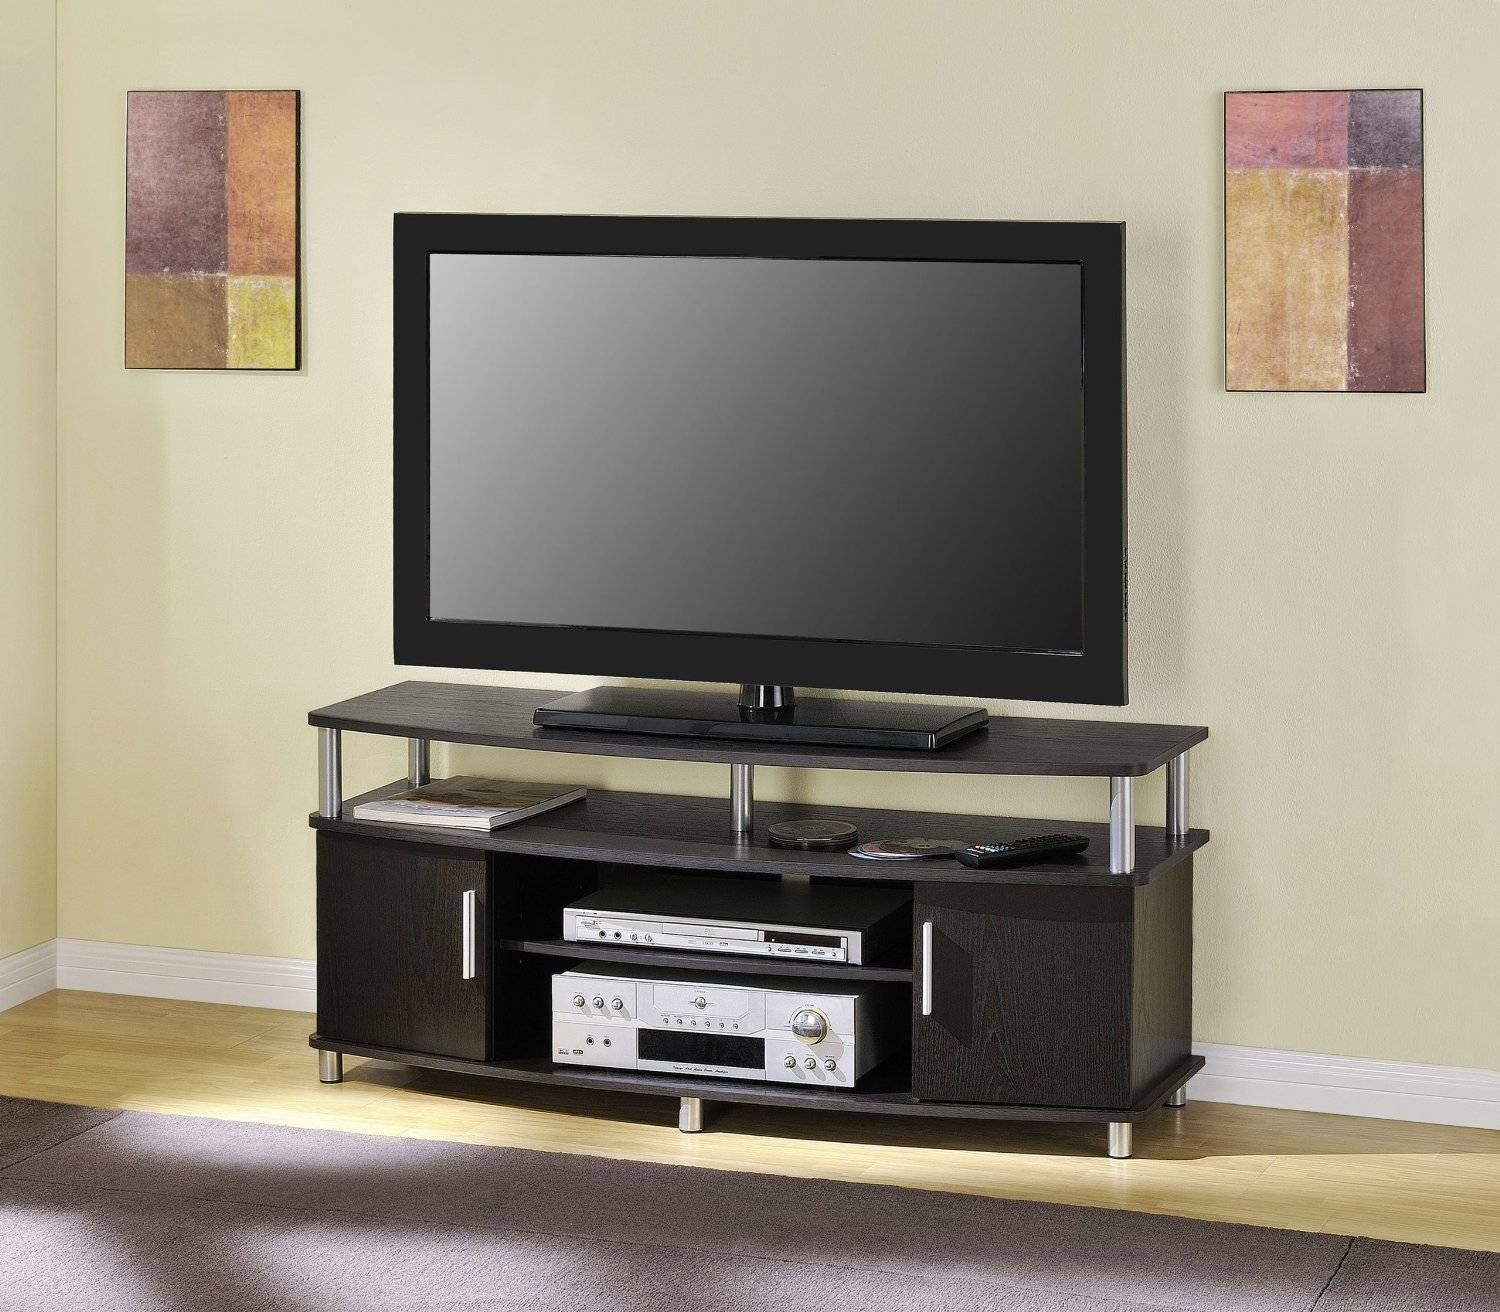 Tv Stands: 7 Best Selling Flat Screen Tv Stands 2017 within Modern Tv Stands For 60 Inch Tvs (Image 14 of 15)